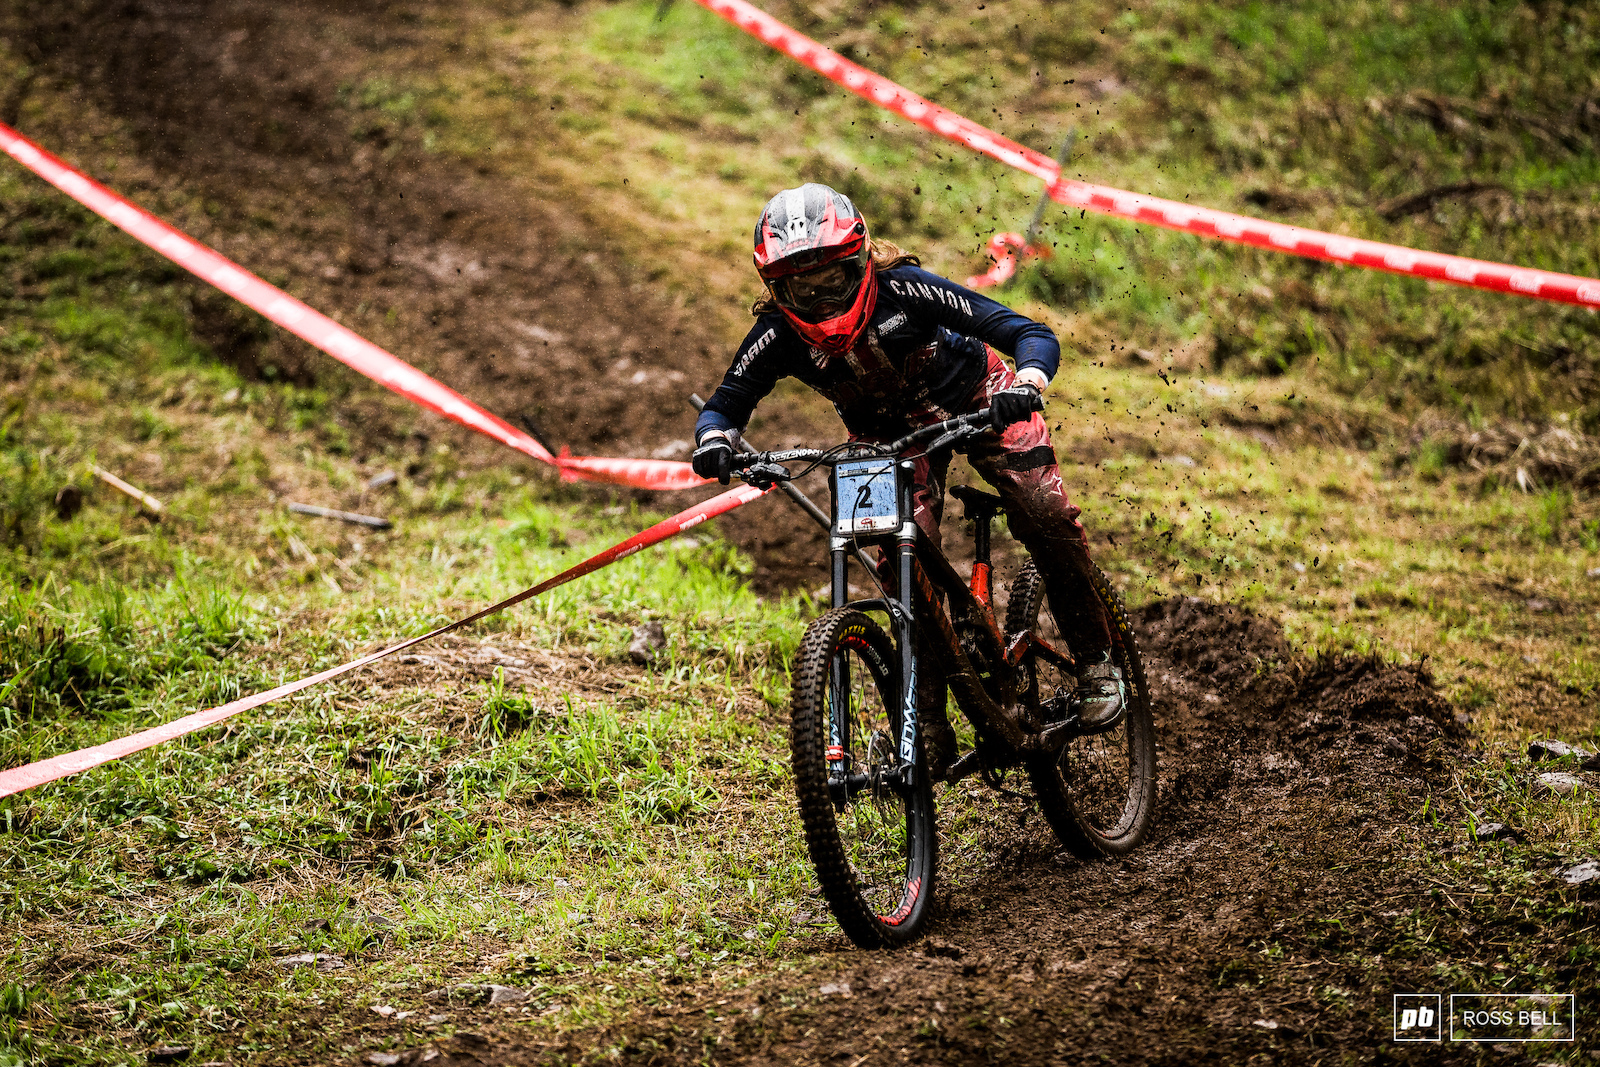 Anna Newkirk looked at ease as the bike squirmed beneath her in the greasy conditions.